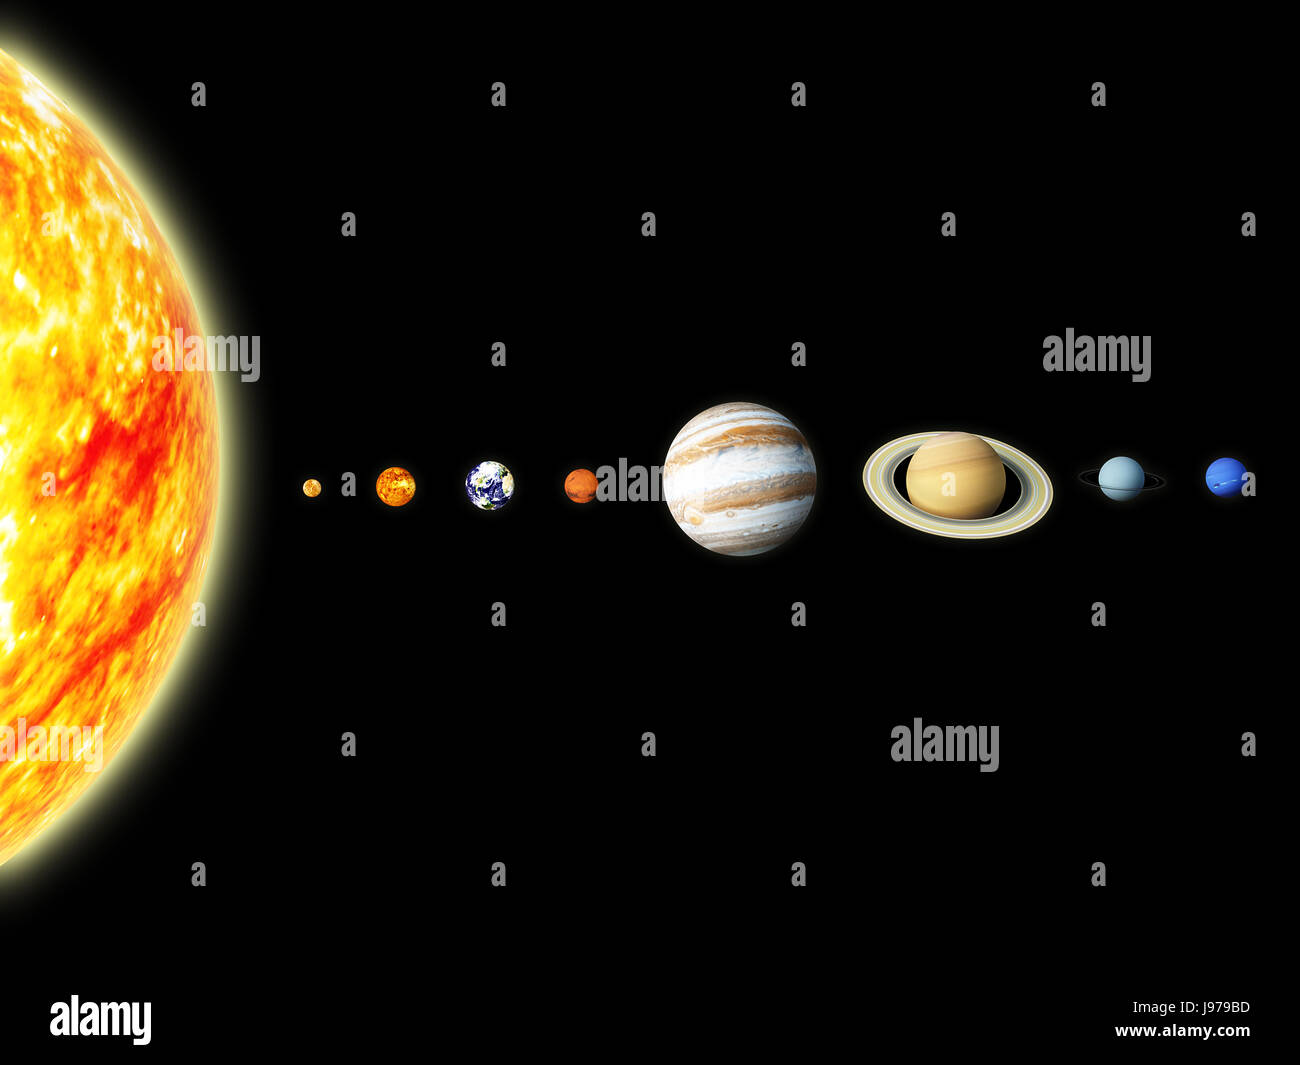 Education Science Solar System Astronomy Planetary